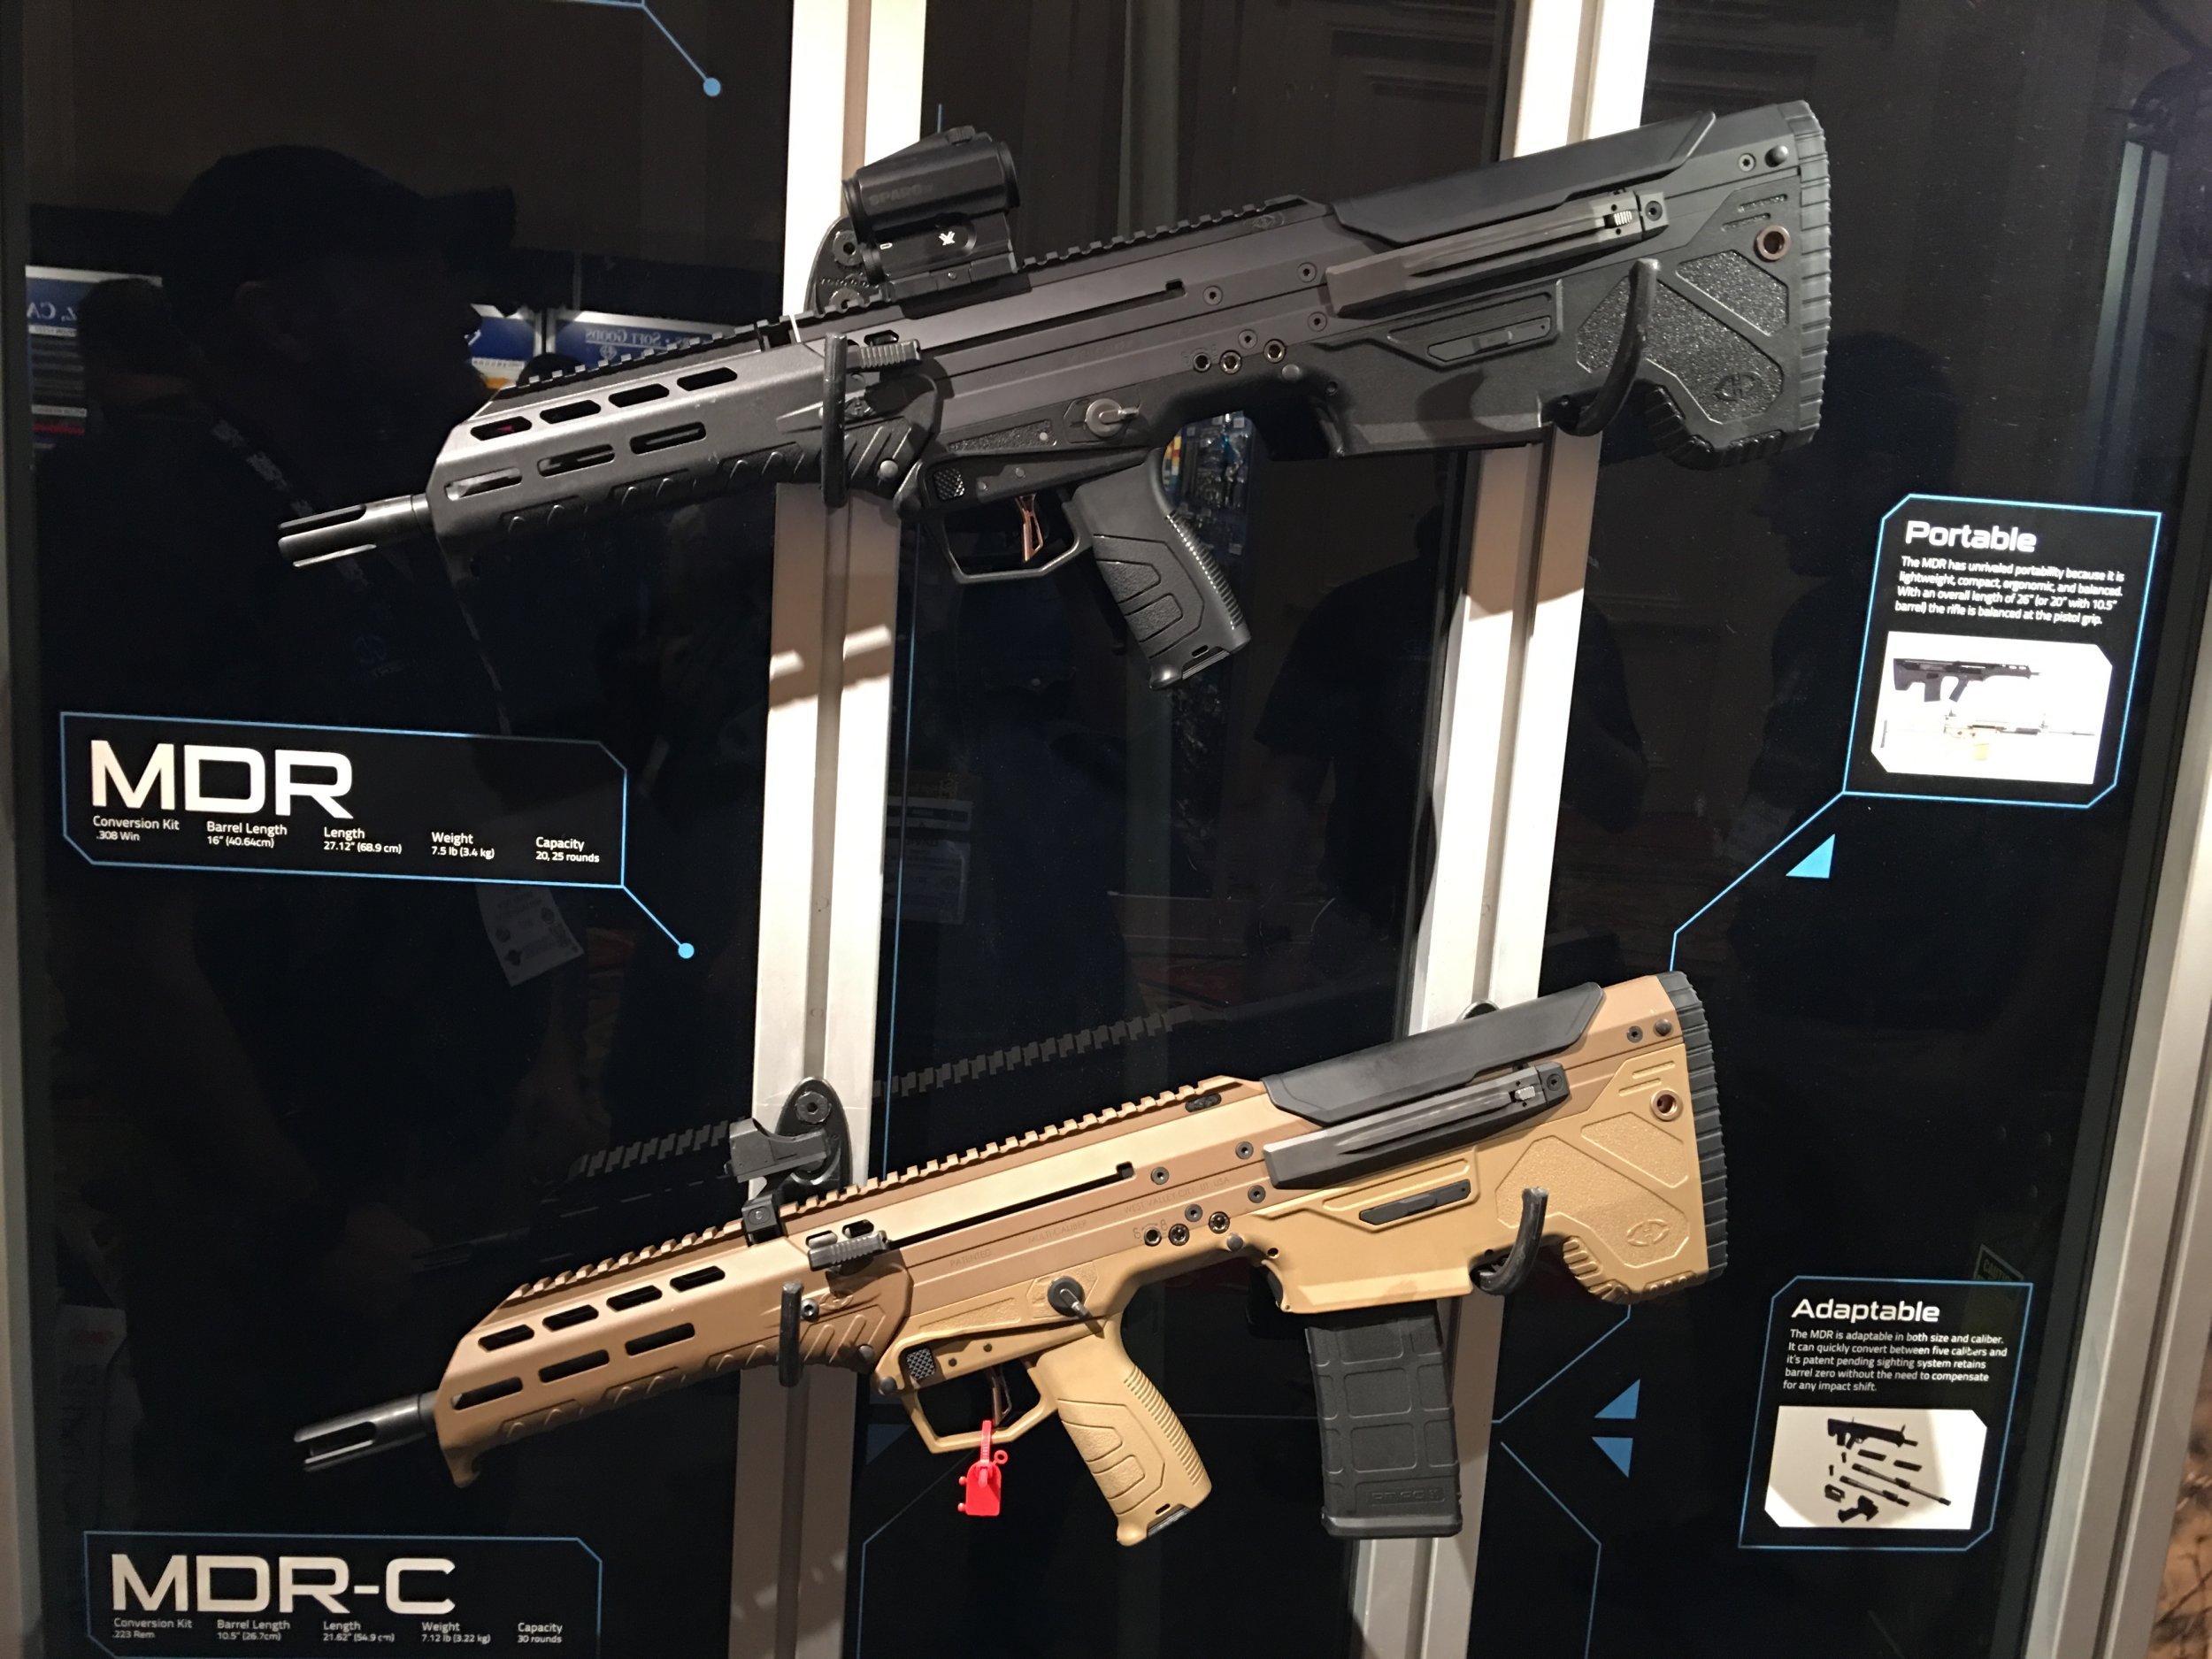 Desert Tech Dt Mdr Micro Dynamic Rifle 7 62mm And Mdr C Compact 5 56mm Nato Bullpup Combat Tactical Rifle Carbine Sbr Update Finally Production Ready Video Defensereview Com Dr An Online Tactical Technology And Military Defense Technology